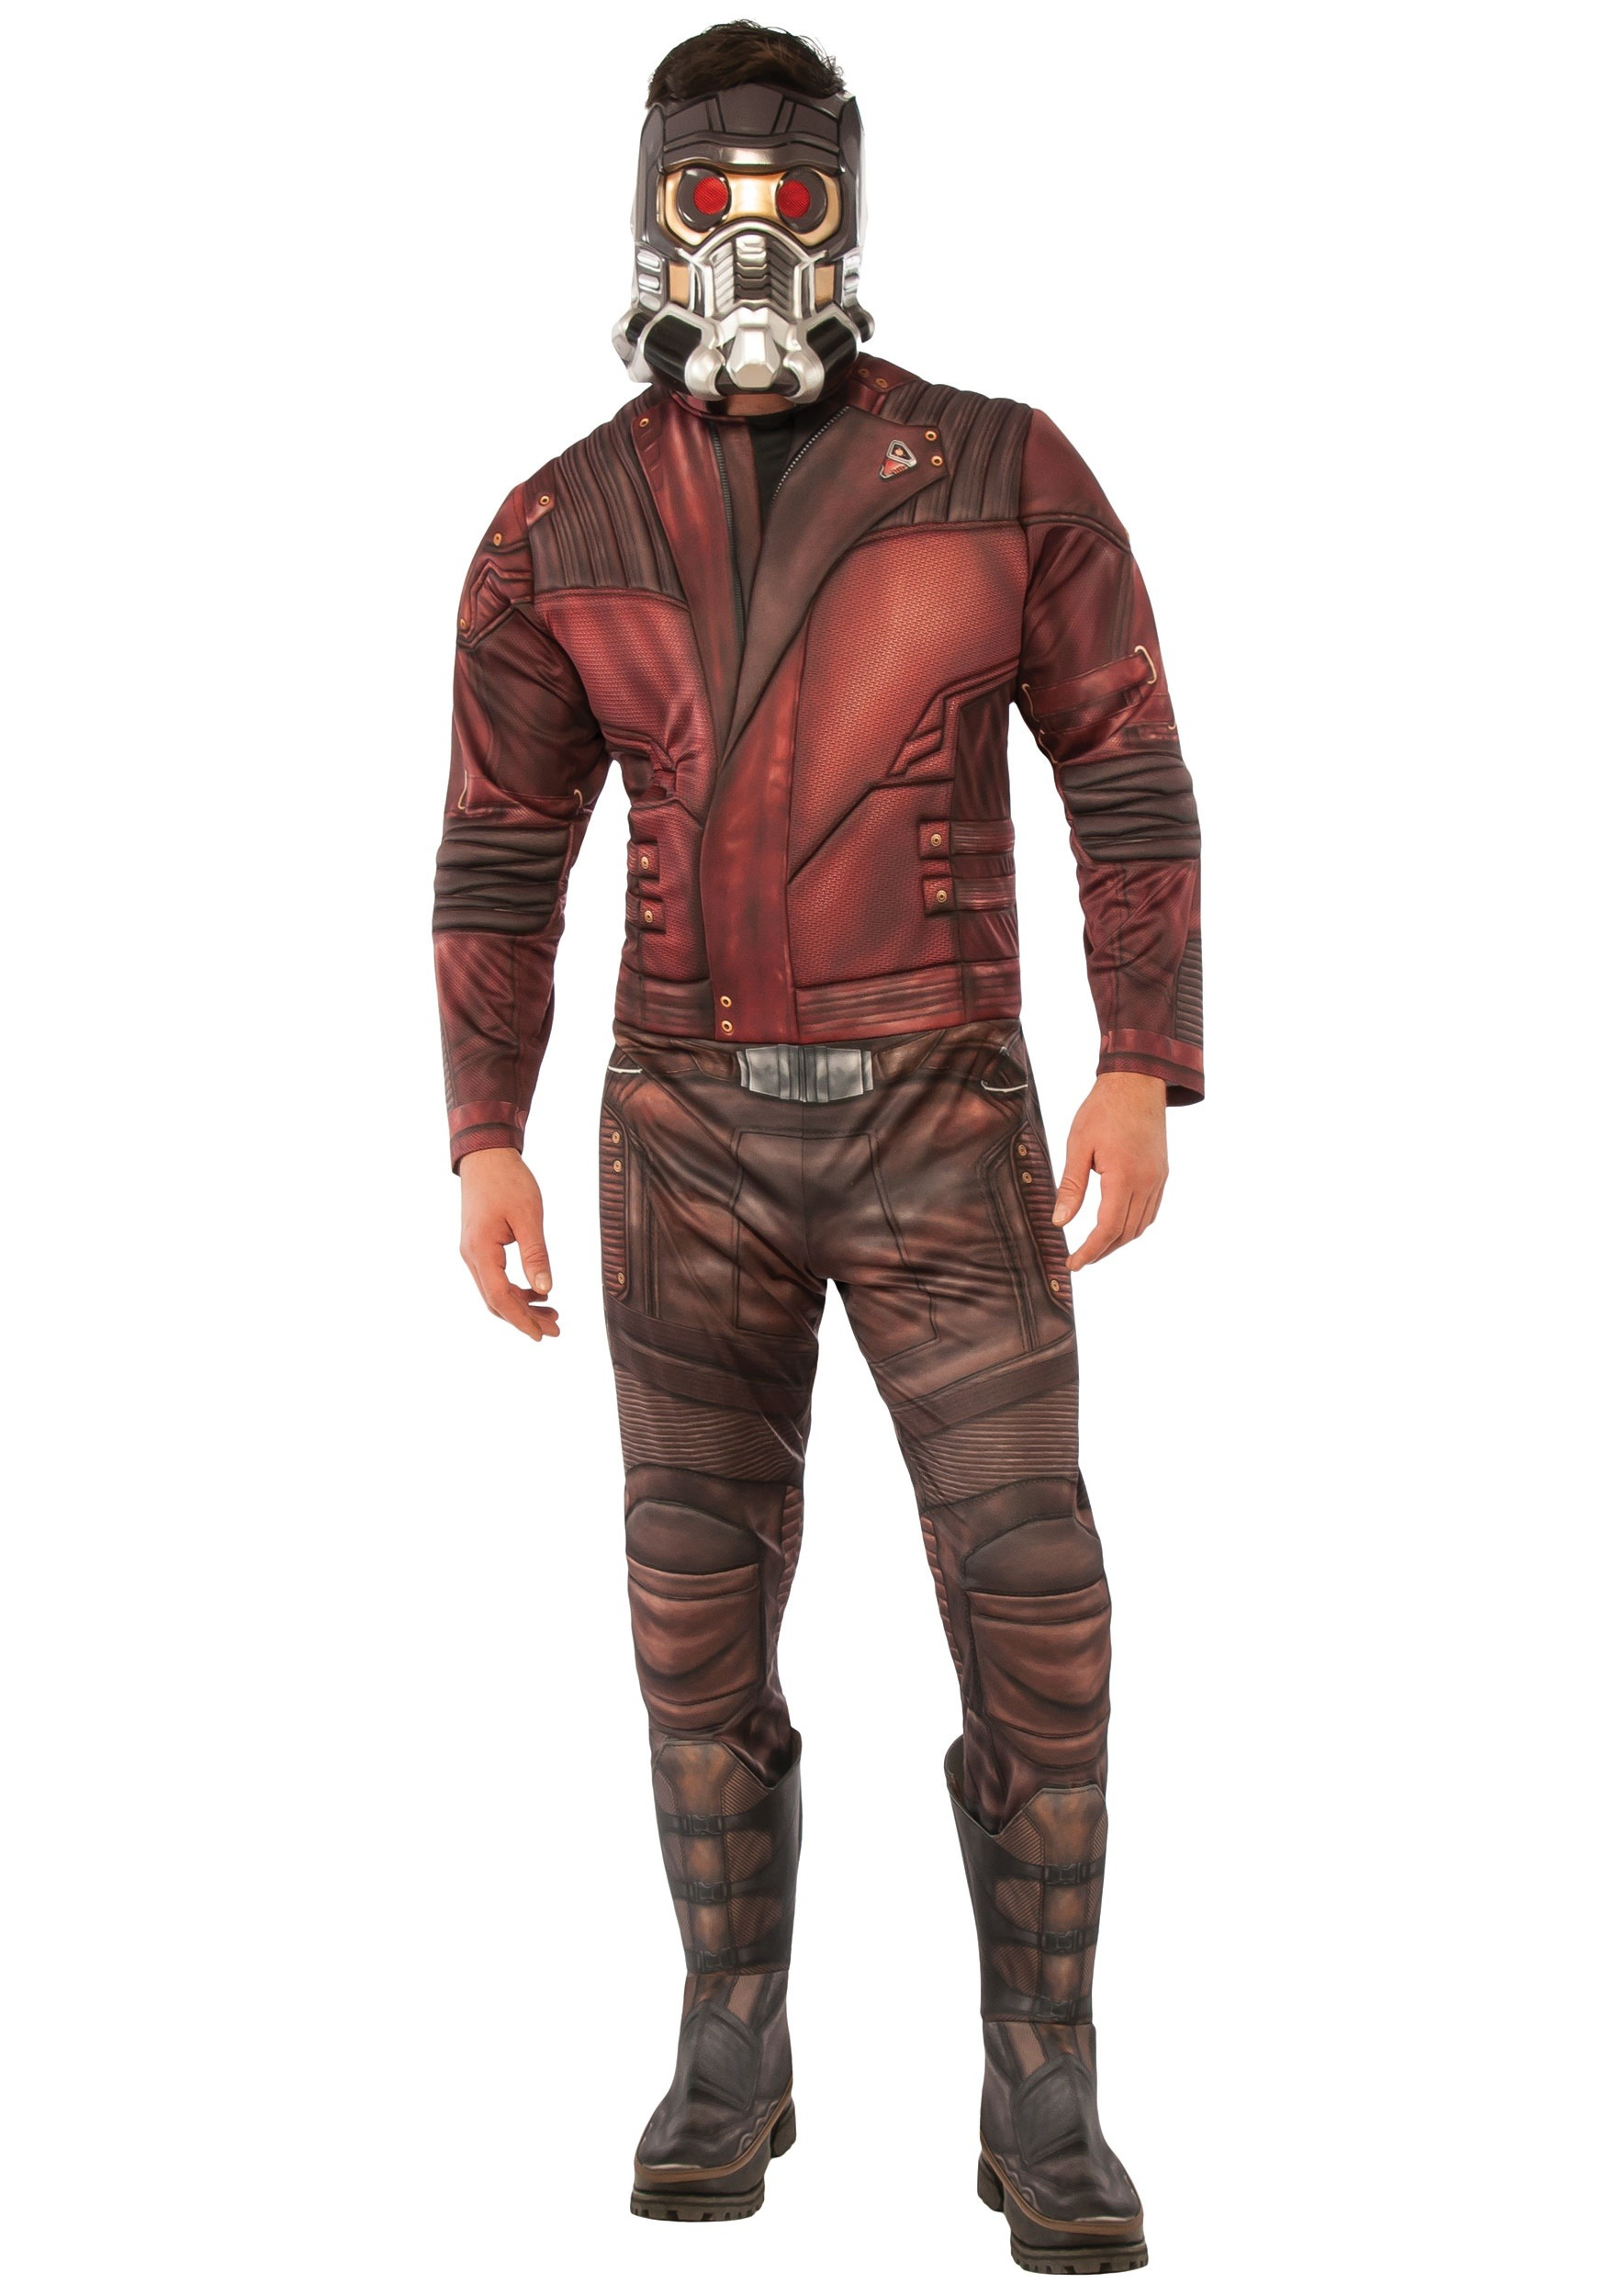 Starlord Guardians of